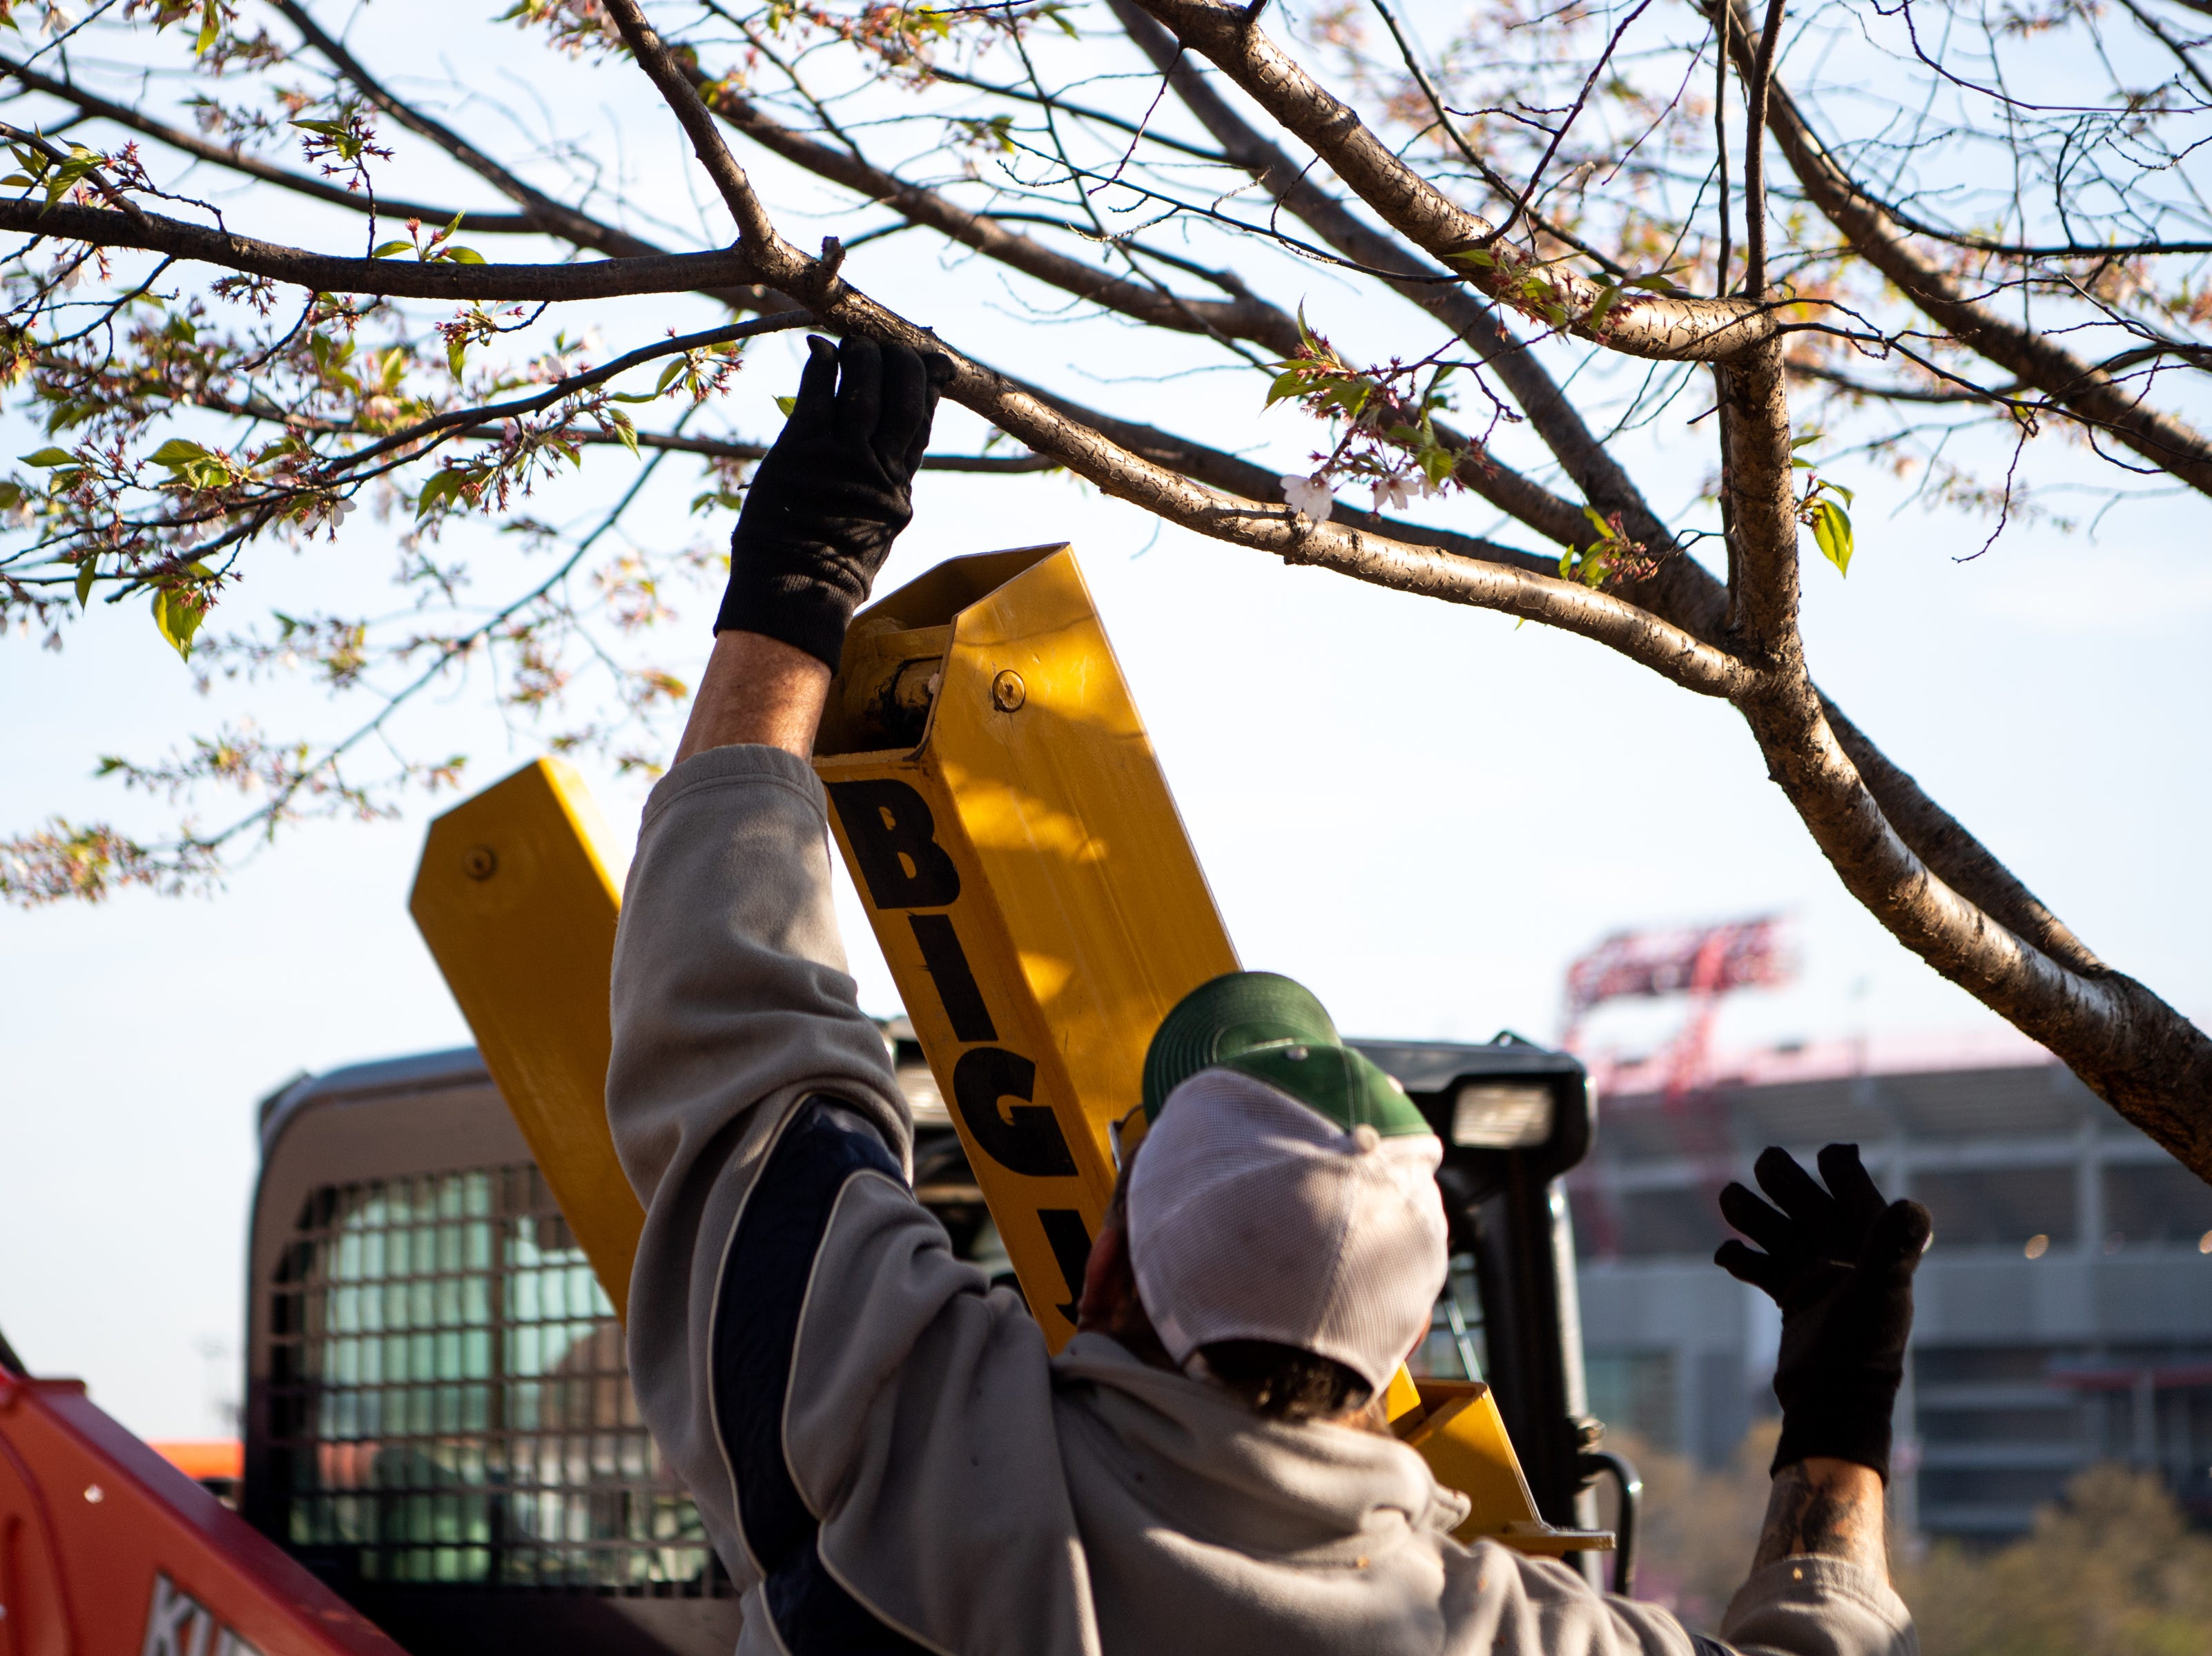 Metro Parks and Recreation workers move branches of a Yoshino Cherry tree to avoid damage during its relocation along the riverfront Wednesday, April 3, 2019, in Nashville, Tenn. The City is transplanting the trees after protest of chopping the trees down to make room for a giant stage for the upcoming NFL Draft.